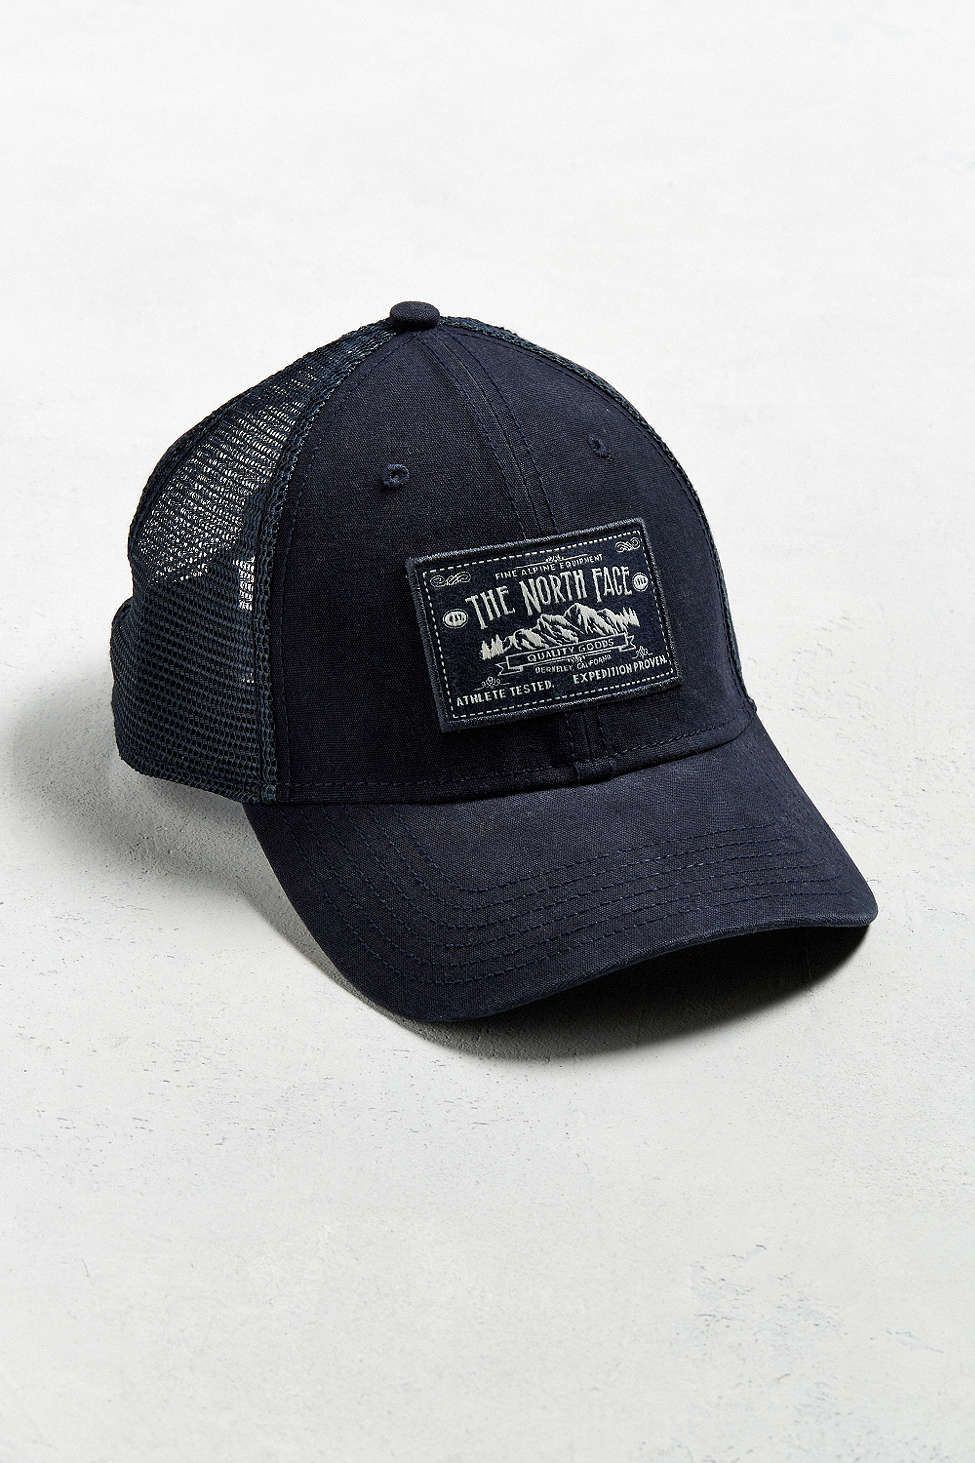 The North Face Mudder Trucker Hat  74bc77bc02f